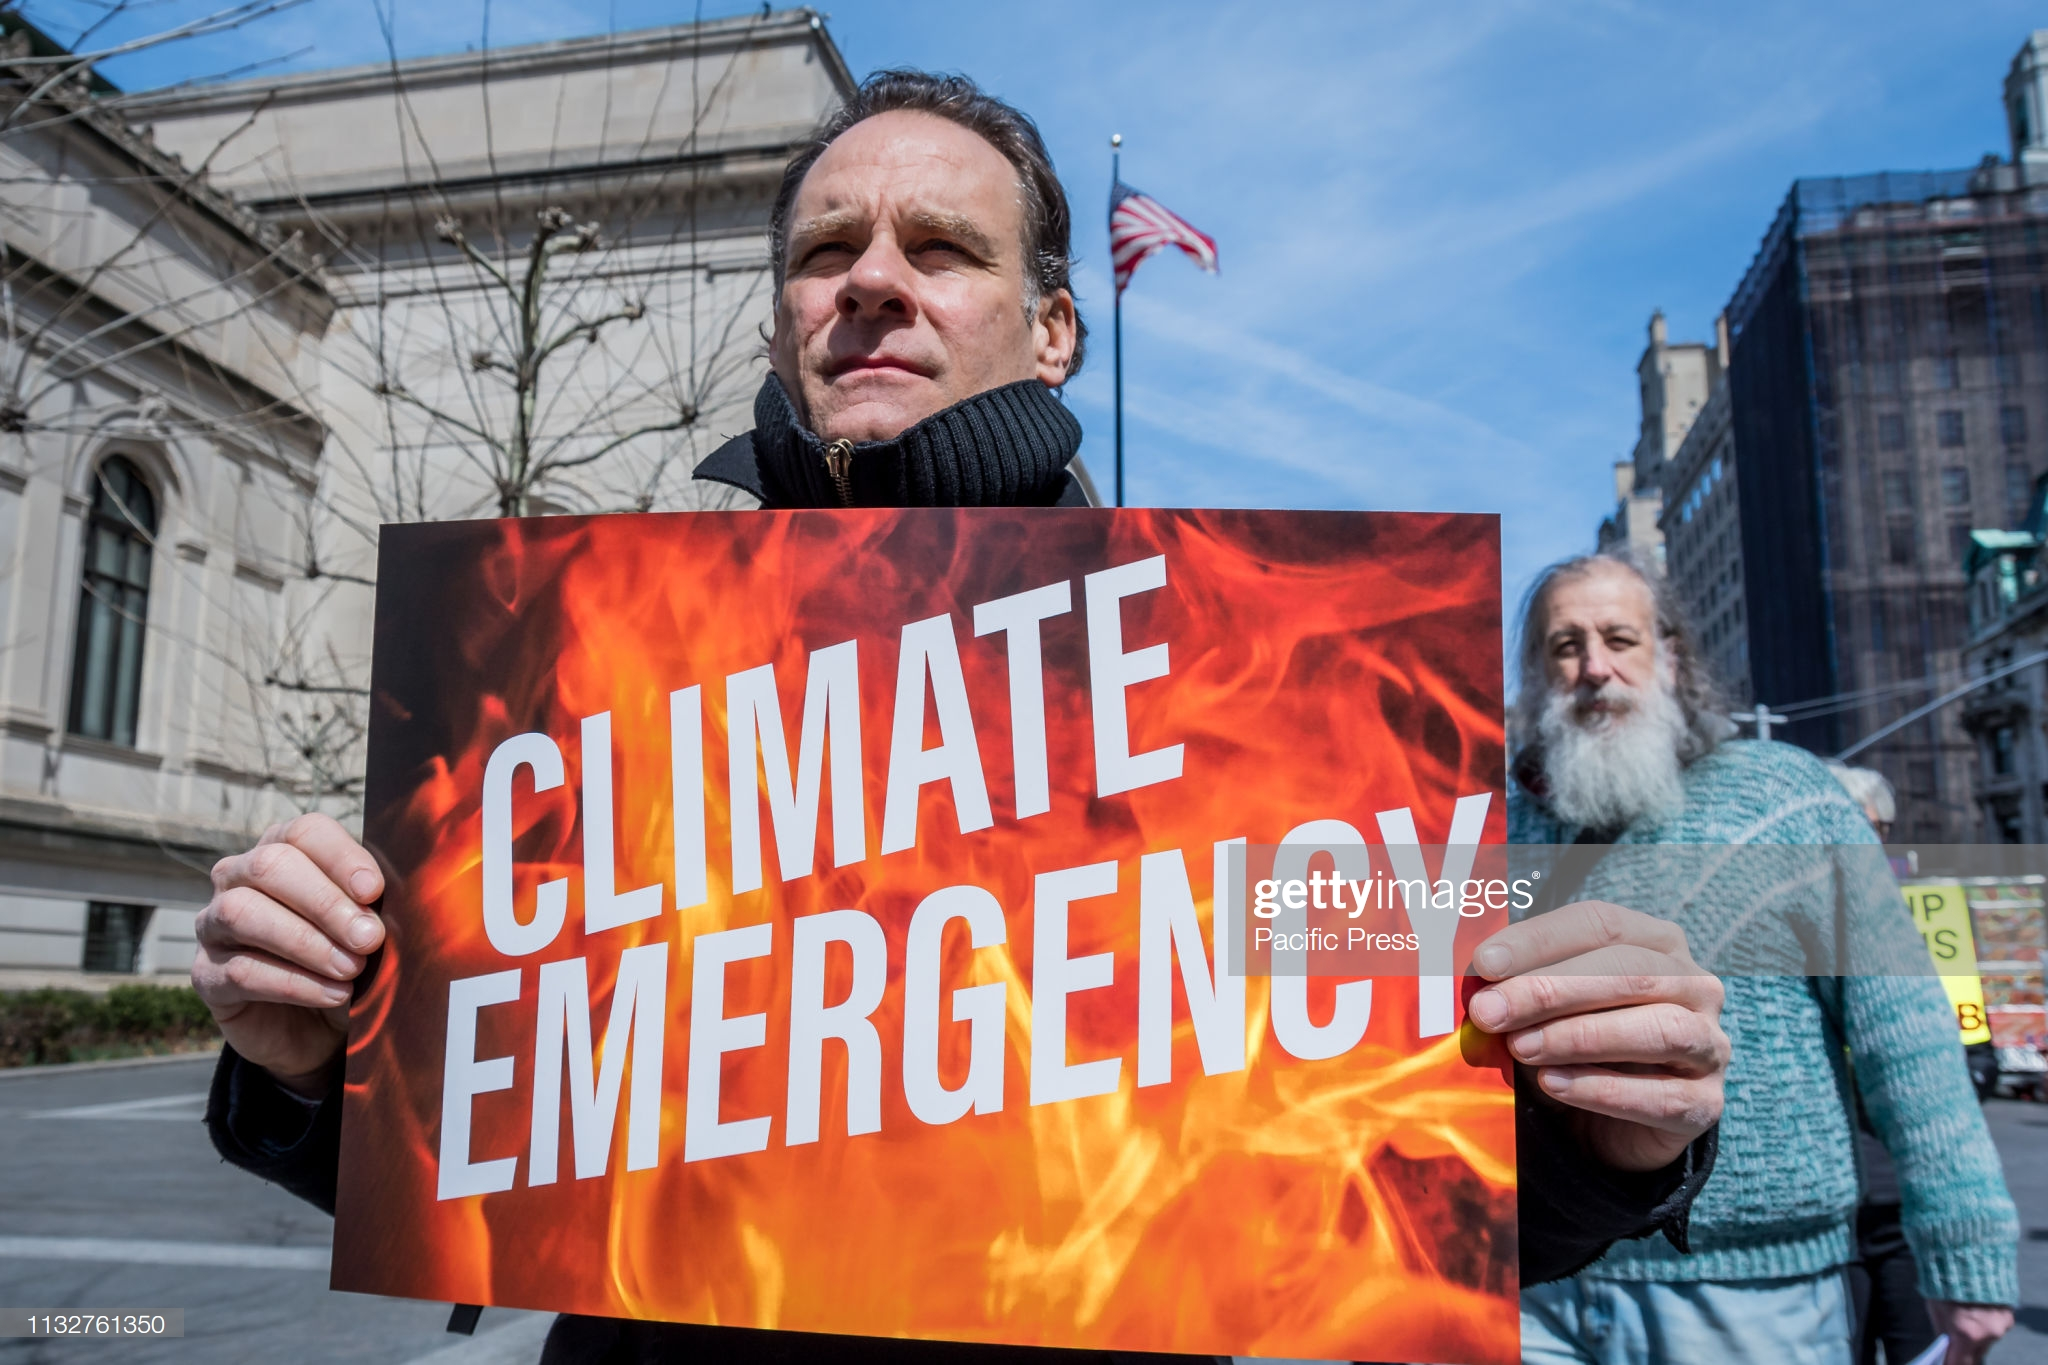 KOCH PLAZA AT THE METROPOLITAN MUSEUM OF ART, NEW YORK, UNITED STATES - 2019/03/24: Activists from Rise and Resist, with co-sponsors 350NYC, Food and Water Watch New York, and 350 Brooklyn gathered at the Koch Plaza outside the Metropolitan Museum of Art in NYC to call for a massive global response and urgent action to end our climate emergency and demanding the rejection of climate denial and delay. (Photo by Erik McGregor/Pacific Press/LightRocket via Getty Images)